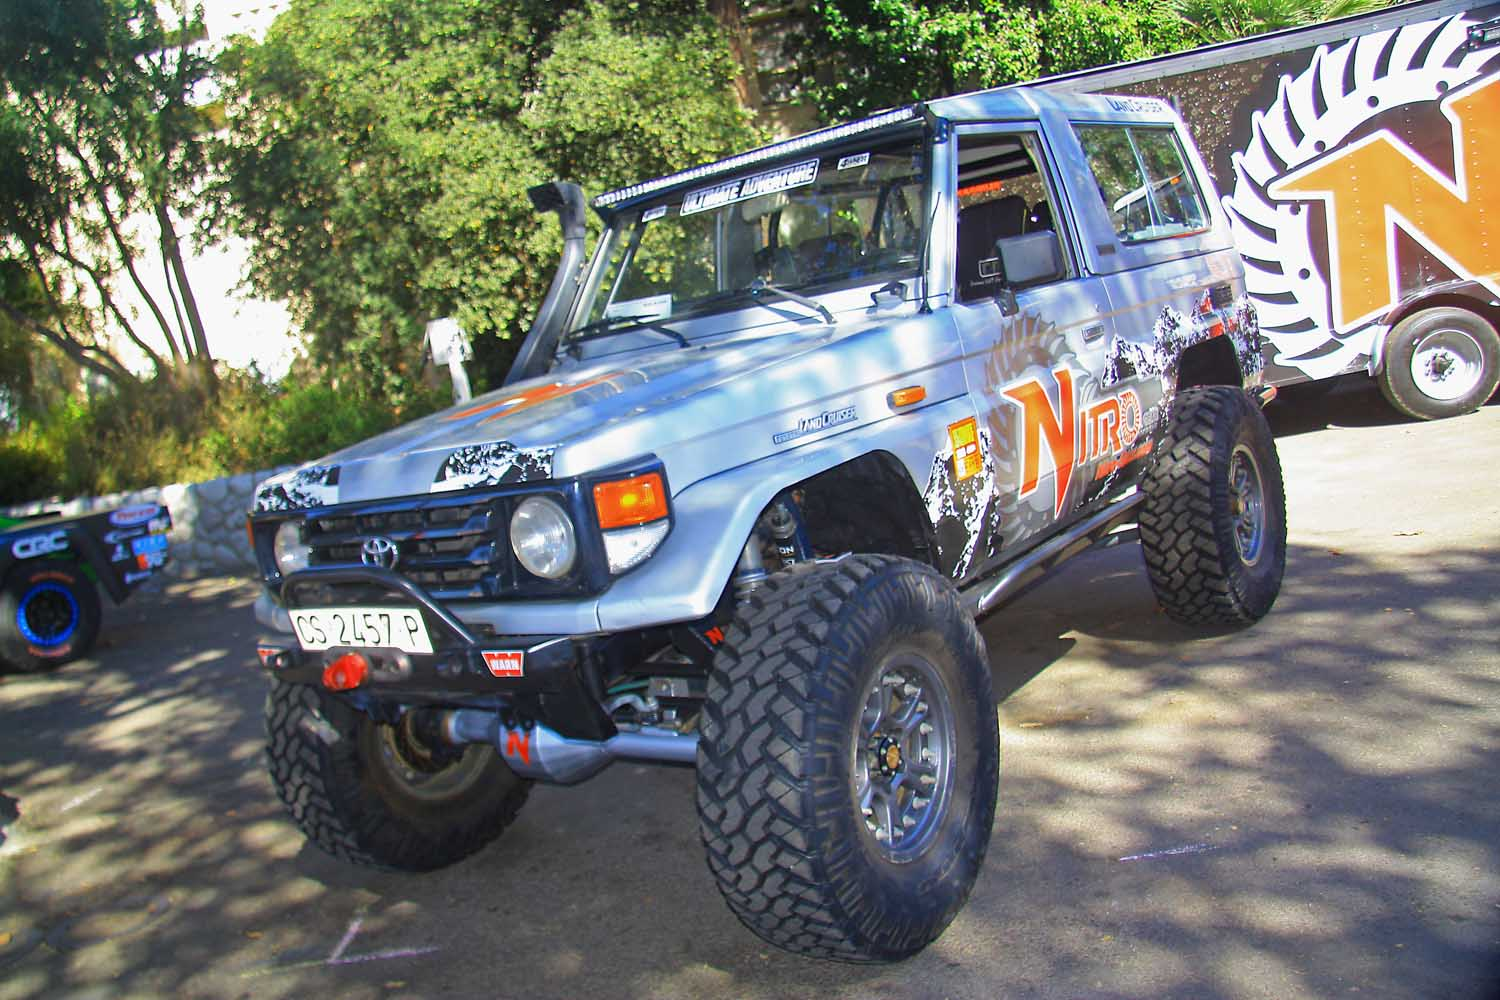 43  Nitro Gear Toyota BJ40 Land Cruiser Ultimate Adventure